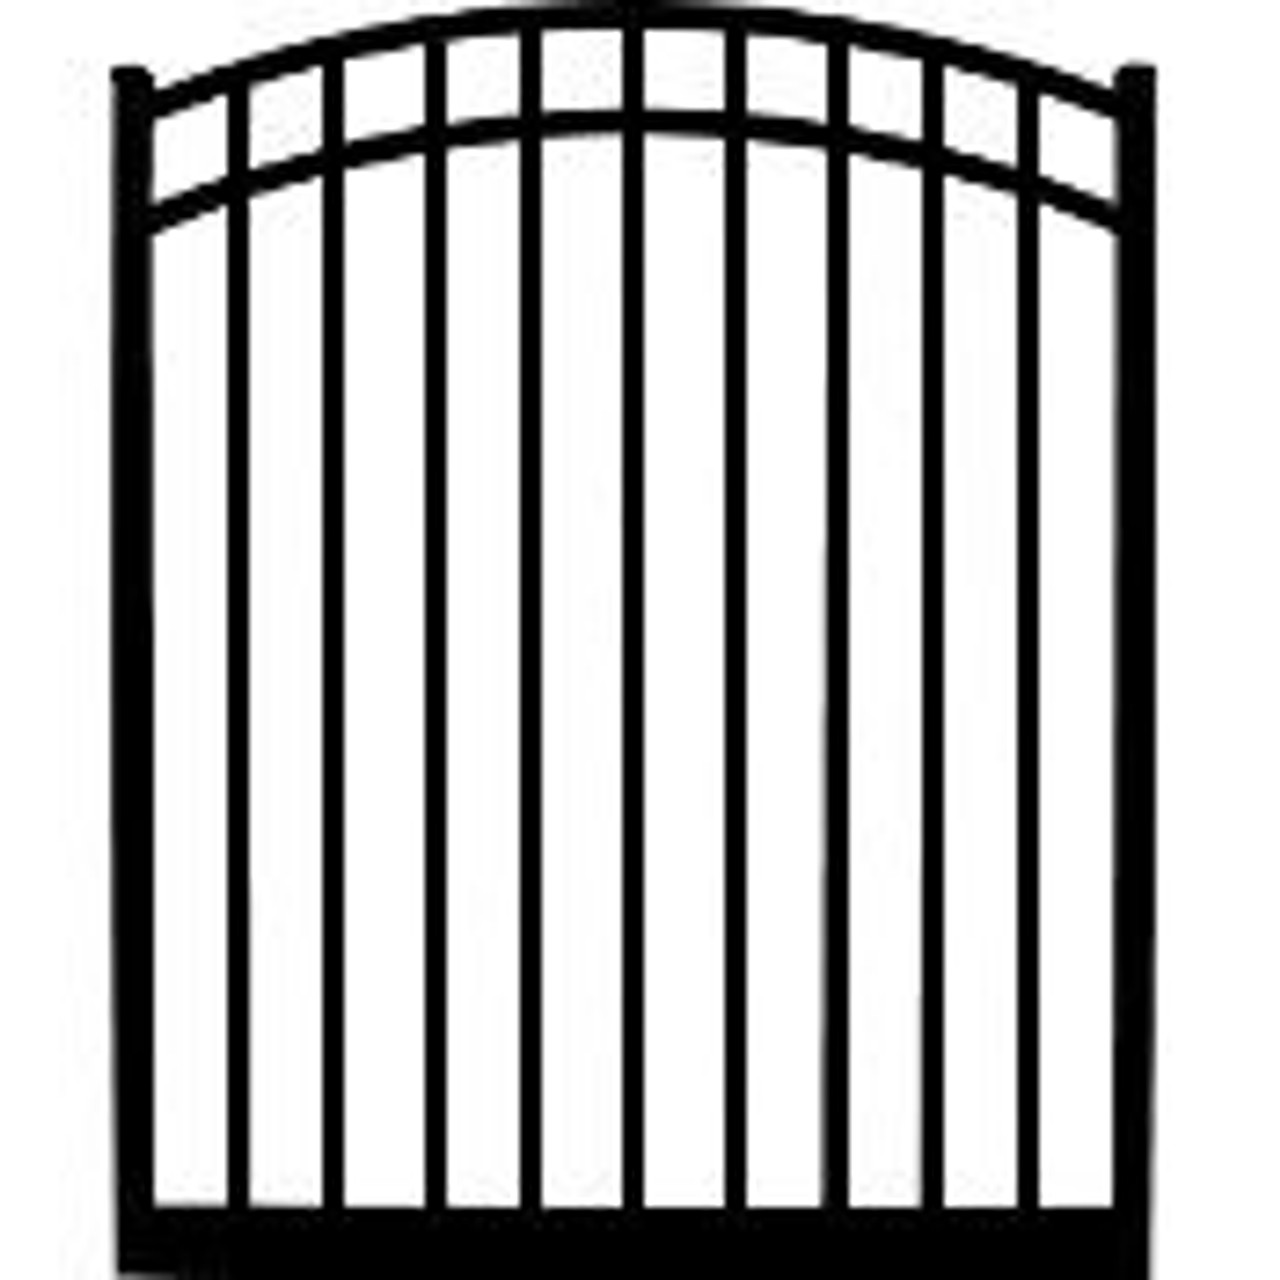 Regis 3230 Arched Aluminum Gate with 3 Rails and Flat Top